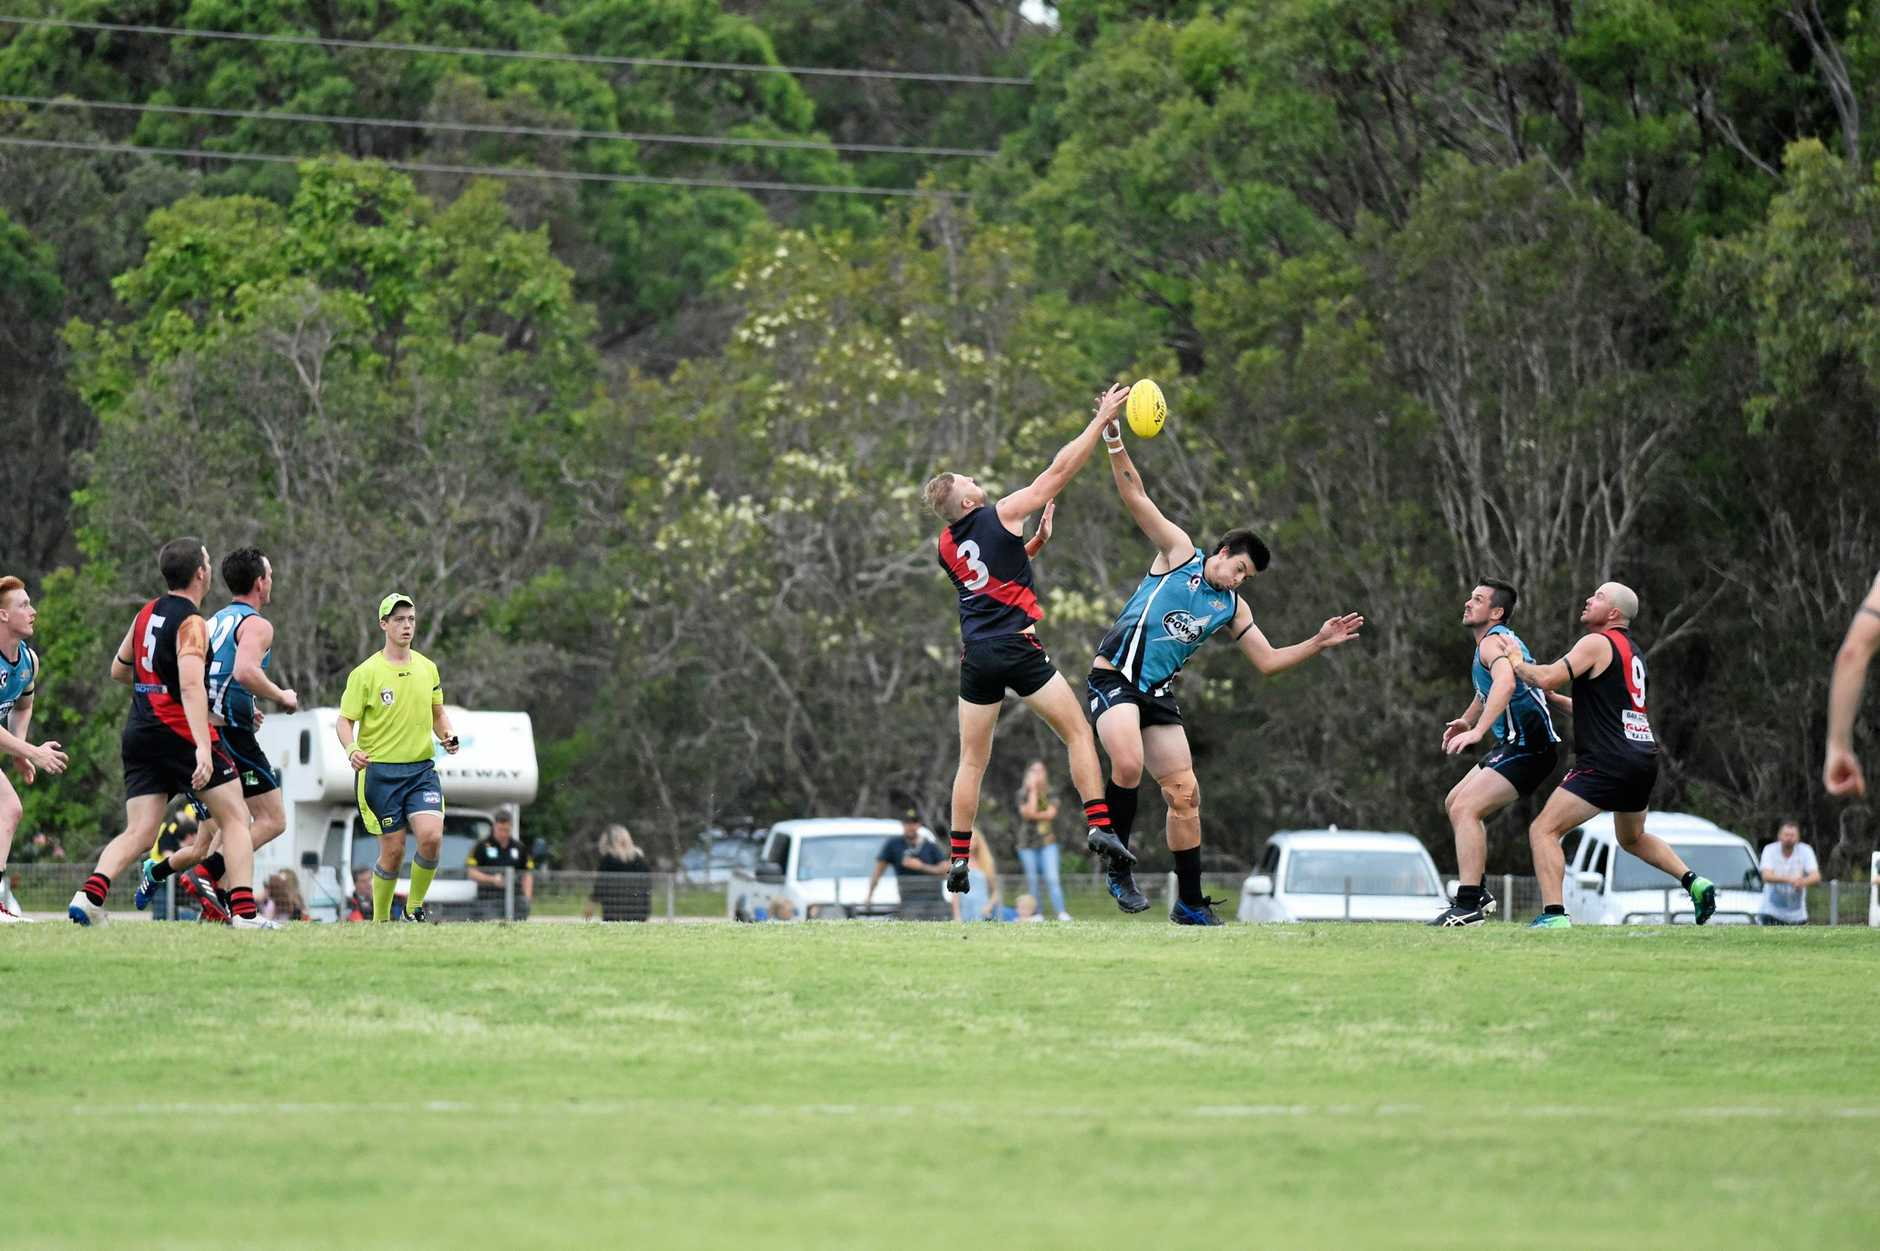 Hervey Bay Bombers Matthew Burgess hits the ball away from the ruck contest in the Anzac Day match against Bay Power.